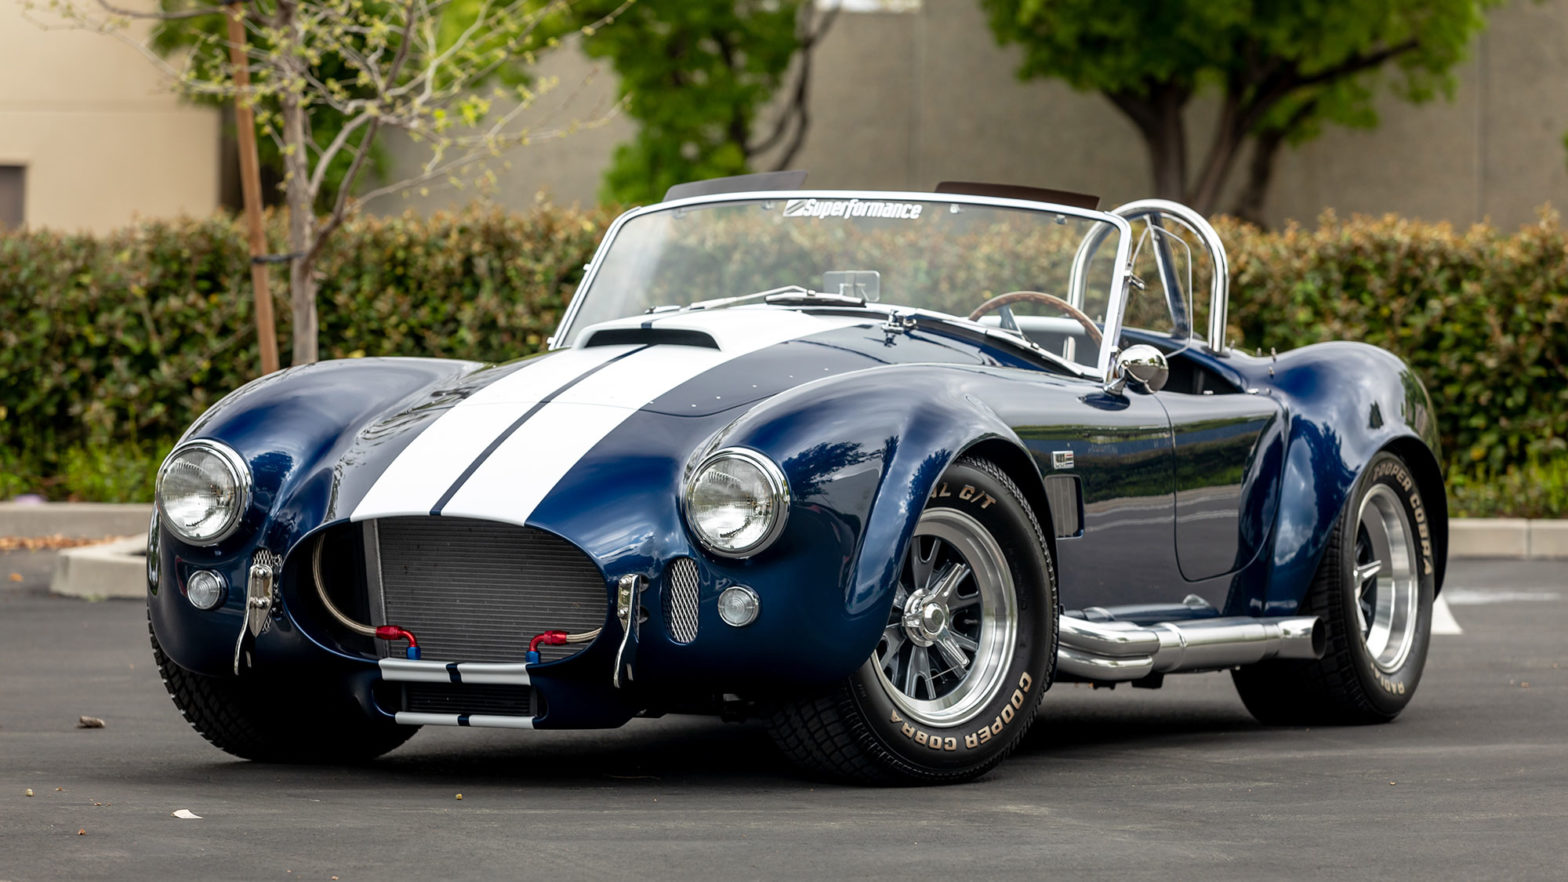 Classic 427 Superformance Cobra Sweepstakes